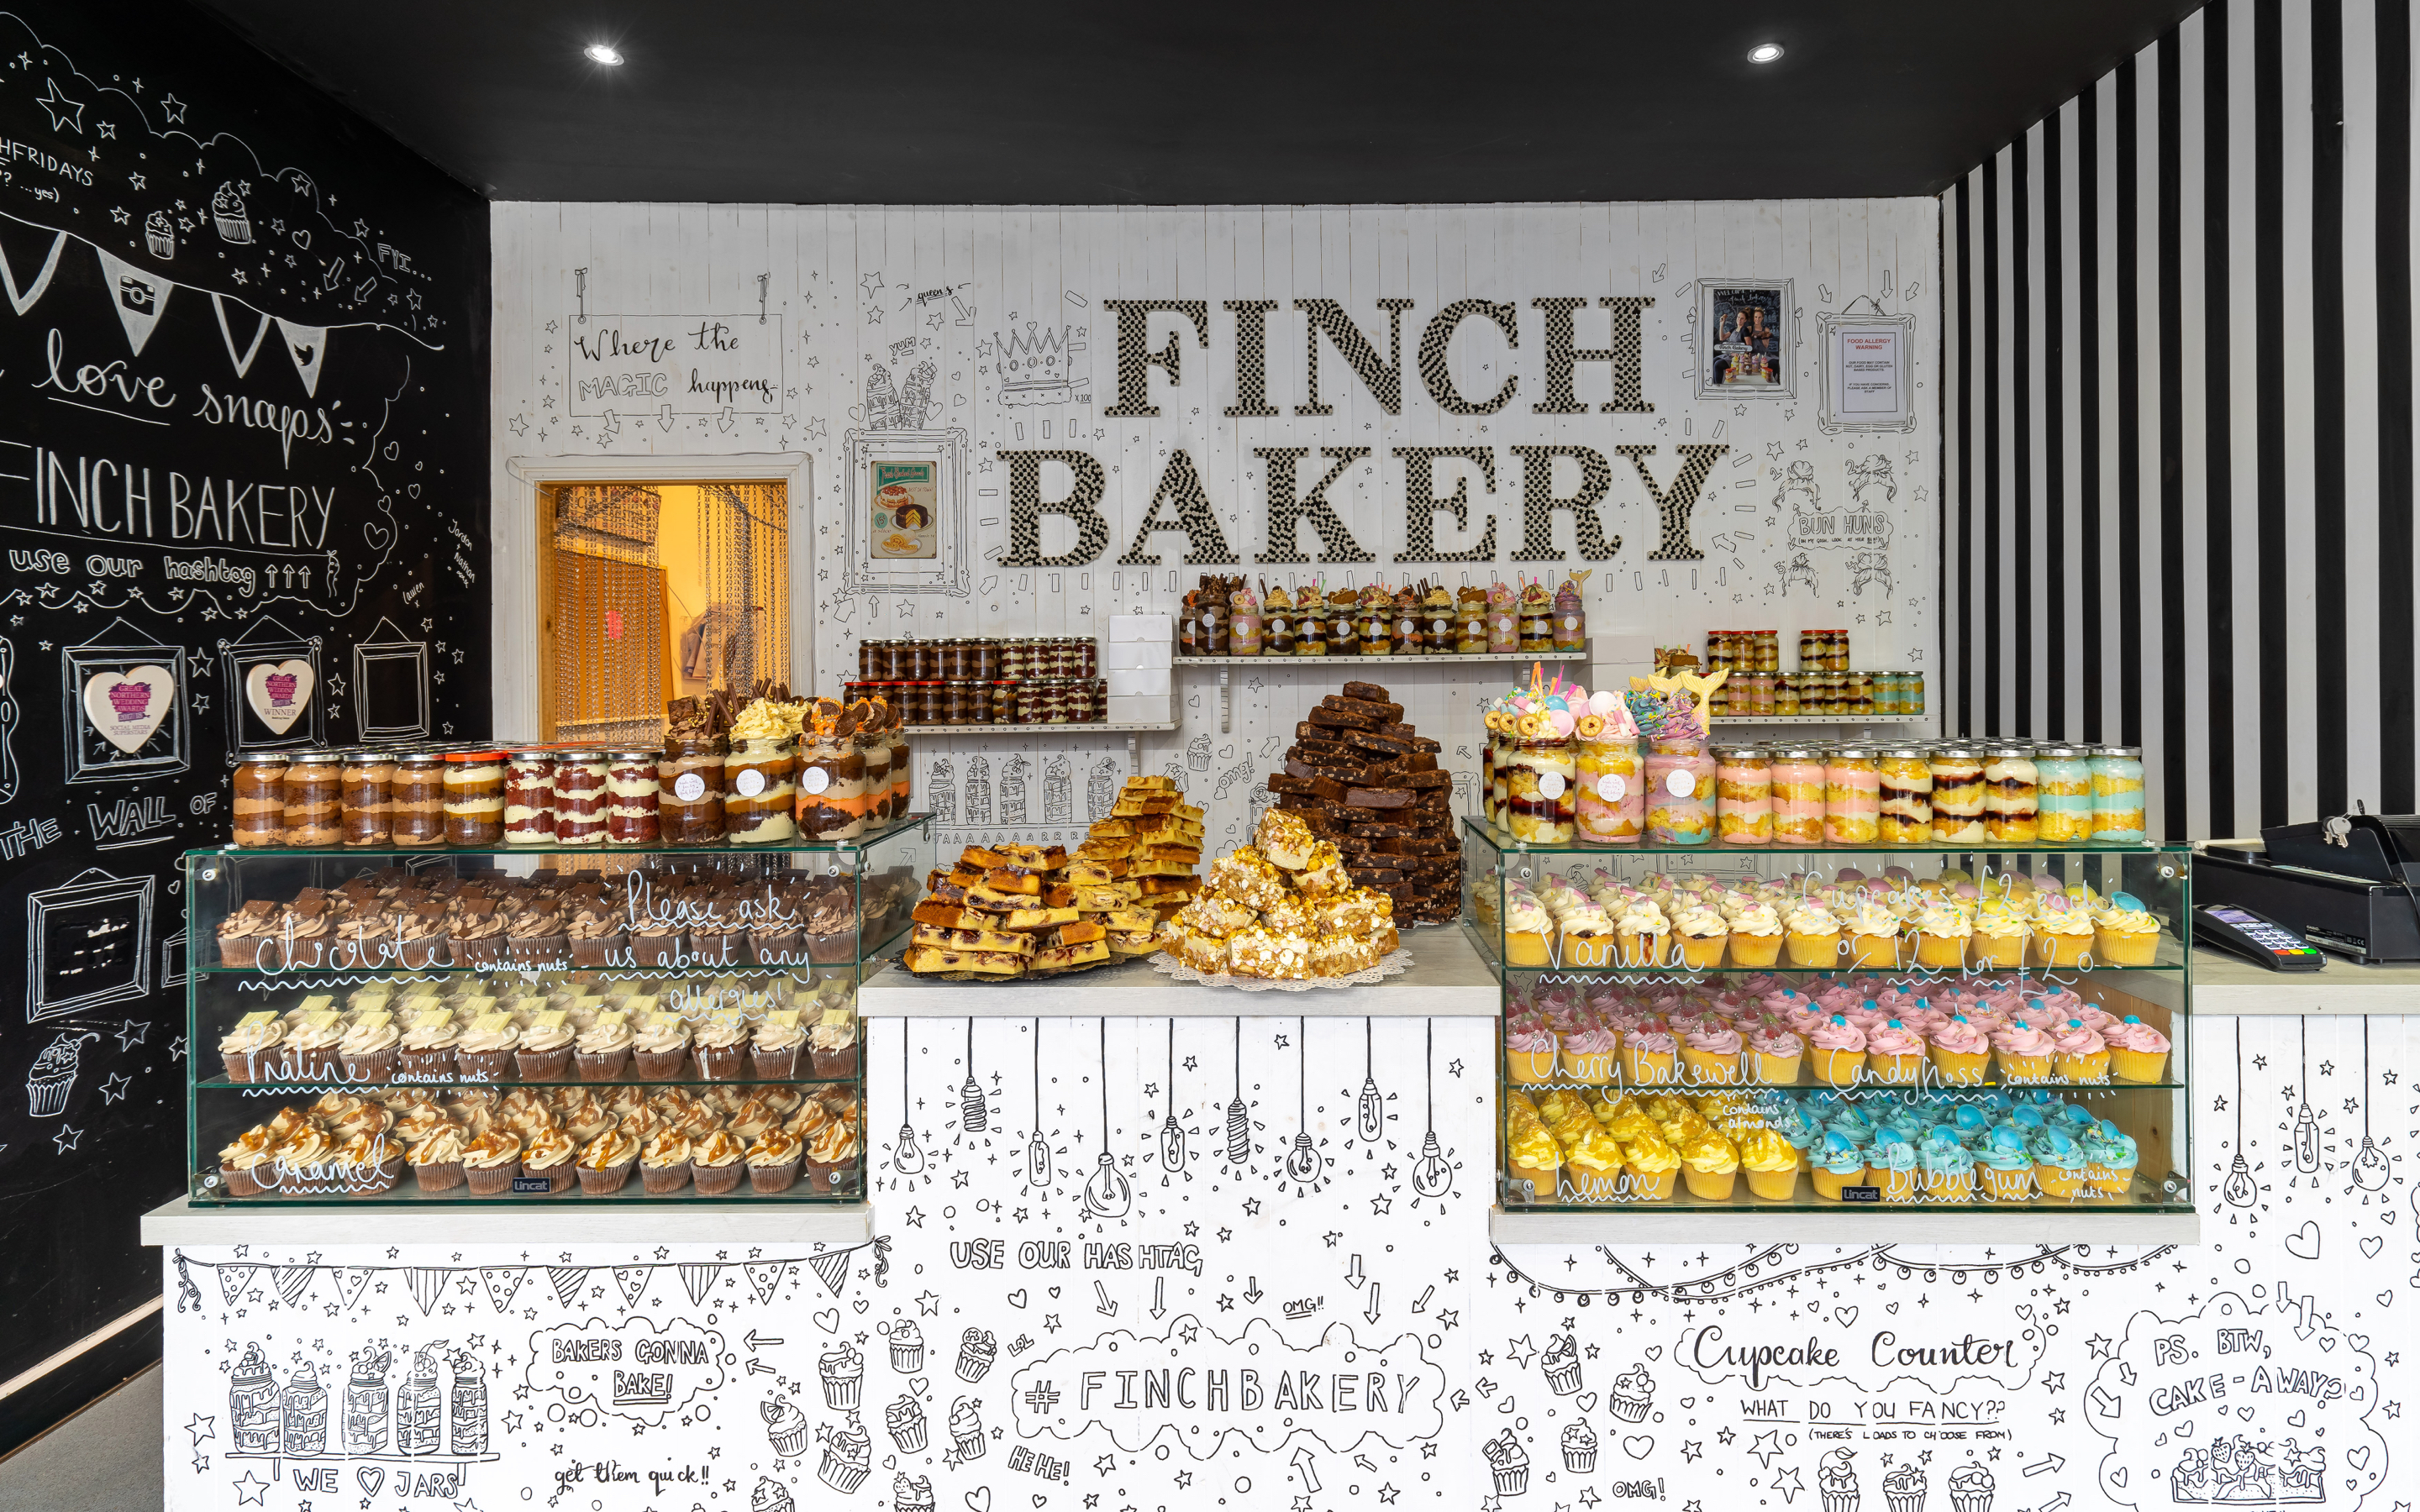 Inside Finch Bakery, an award winning bakery in Lancashire